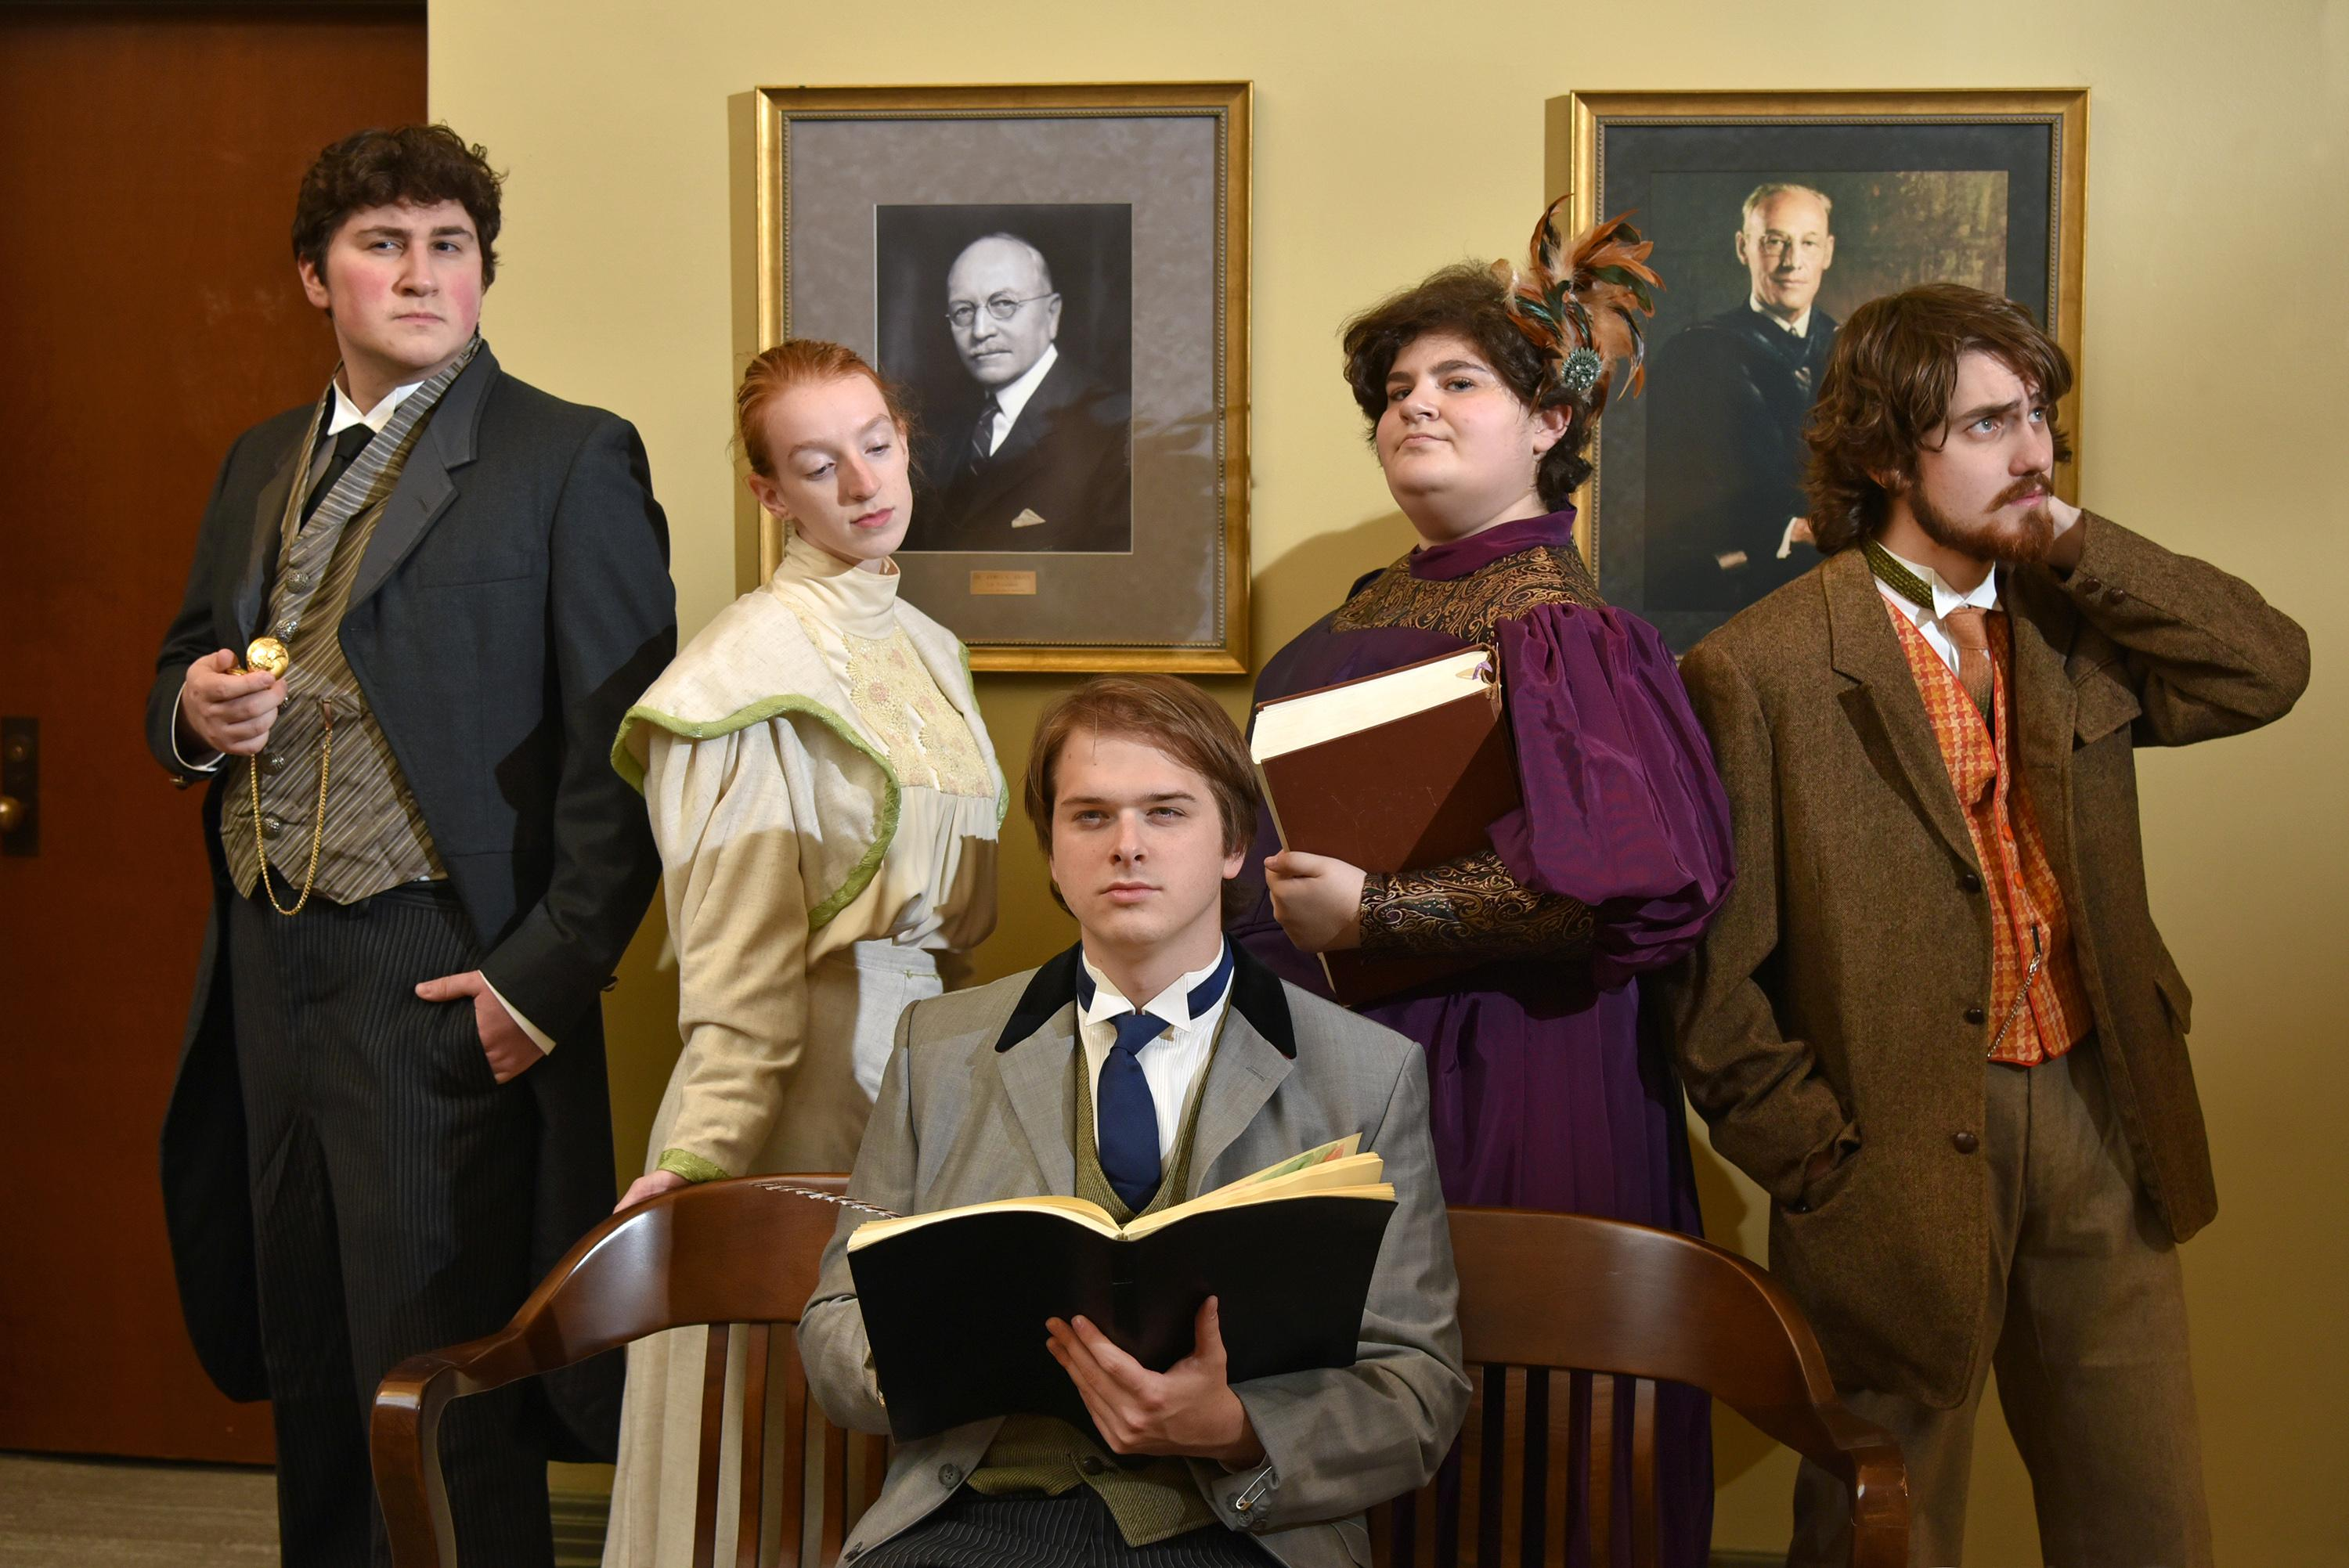 Five cast members of The Good Doctor in 19th century costumes